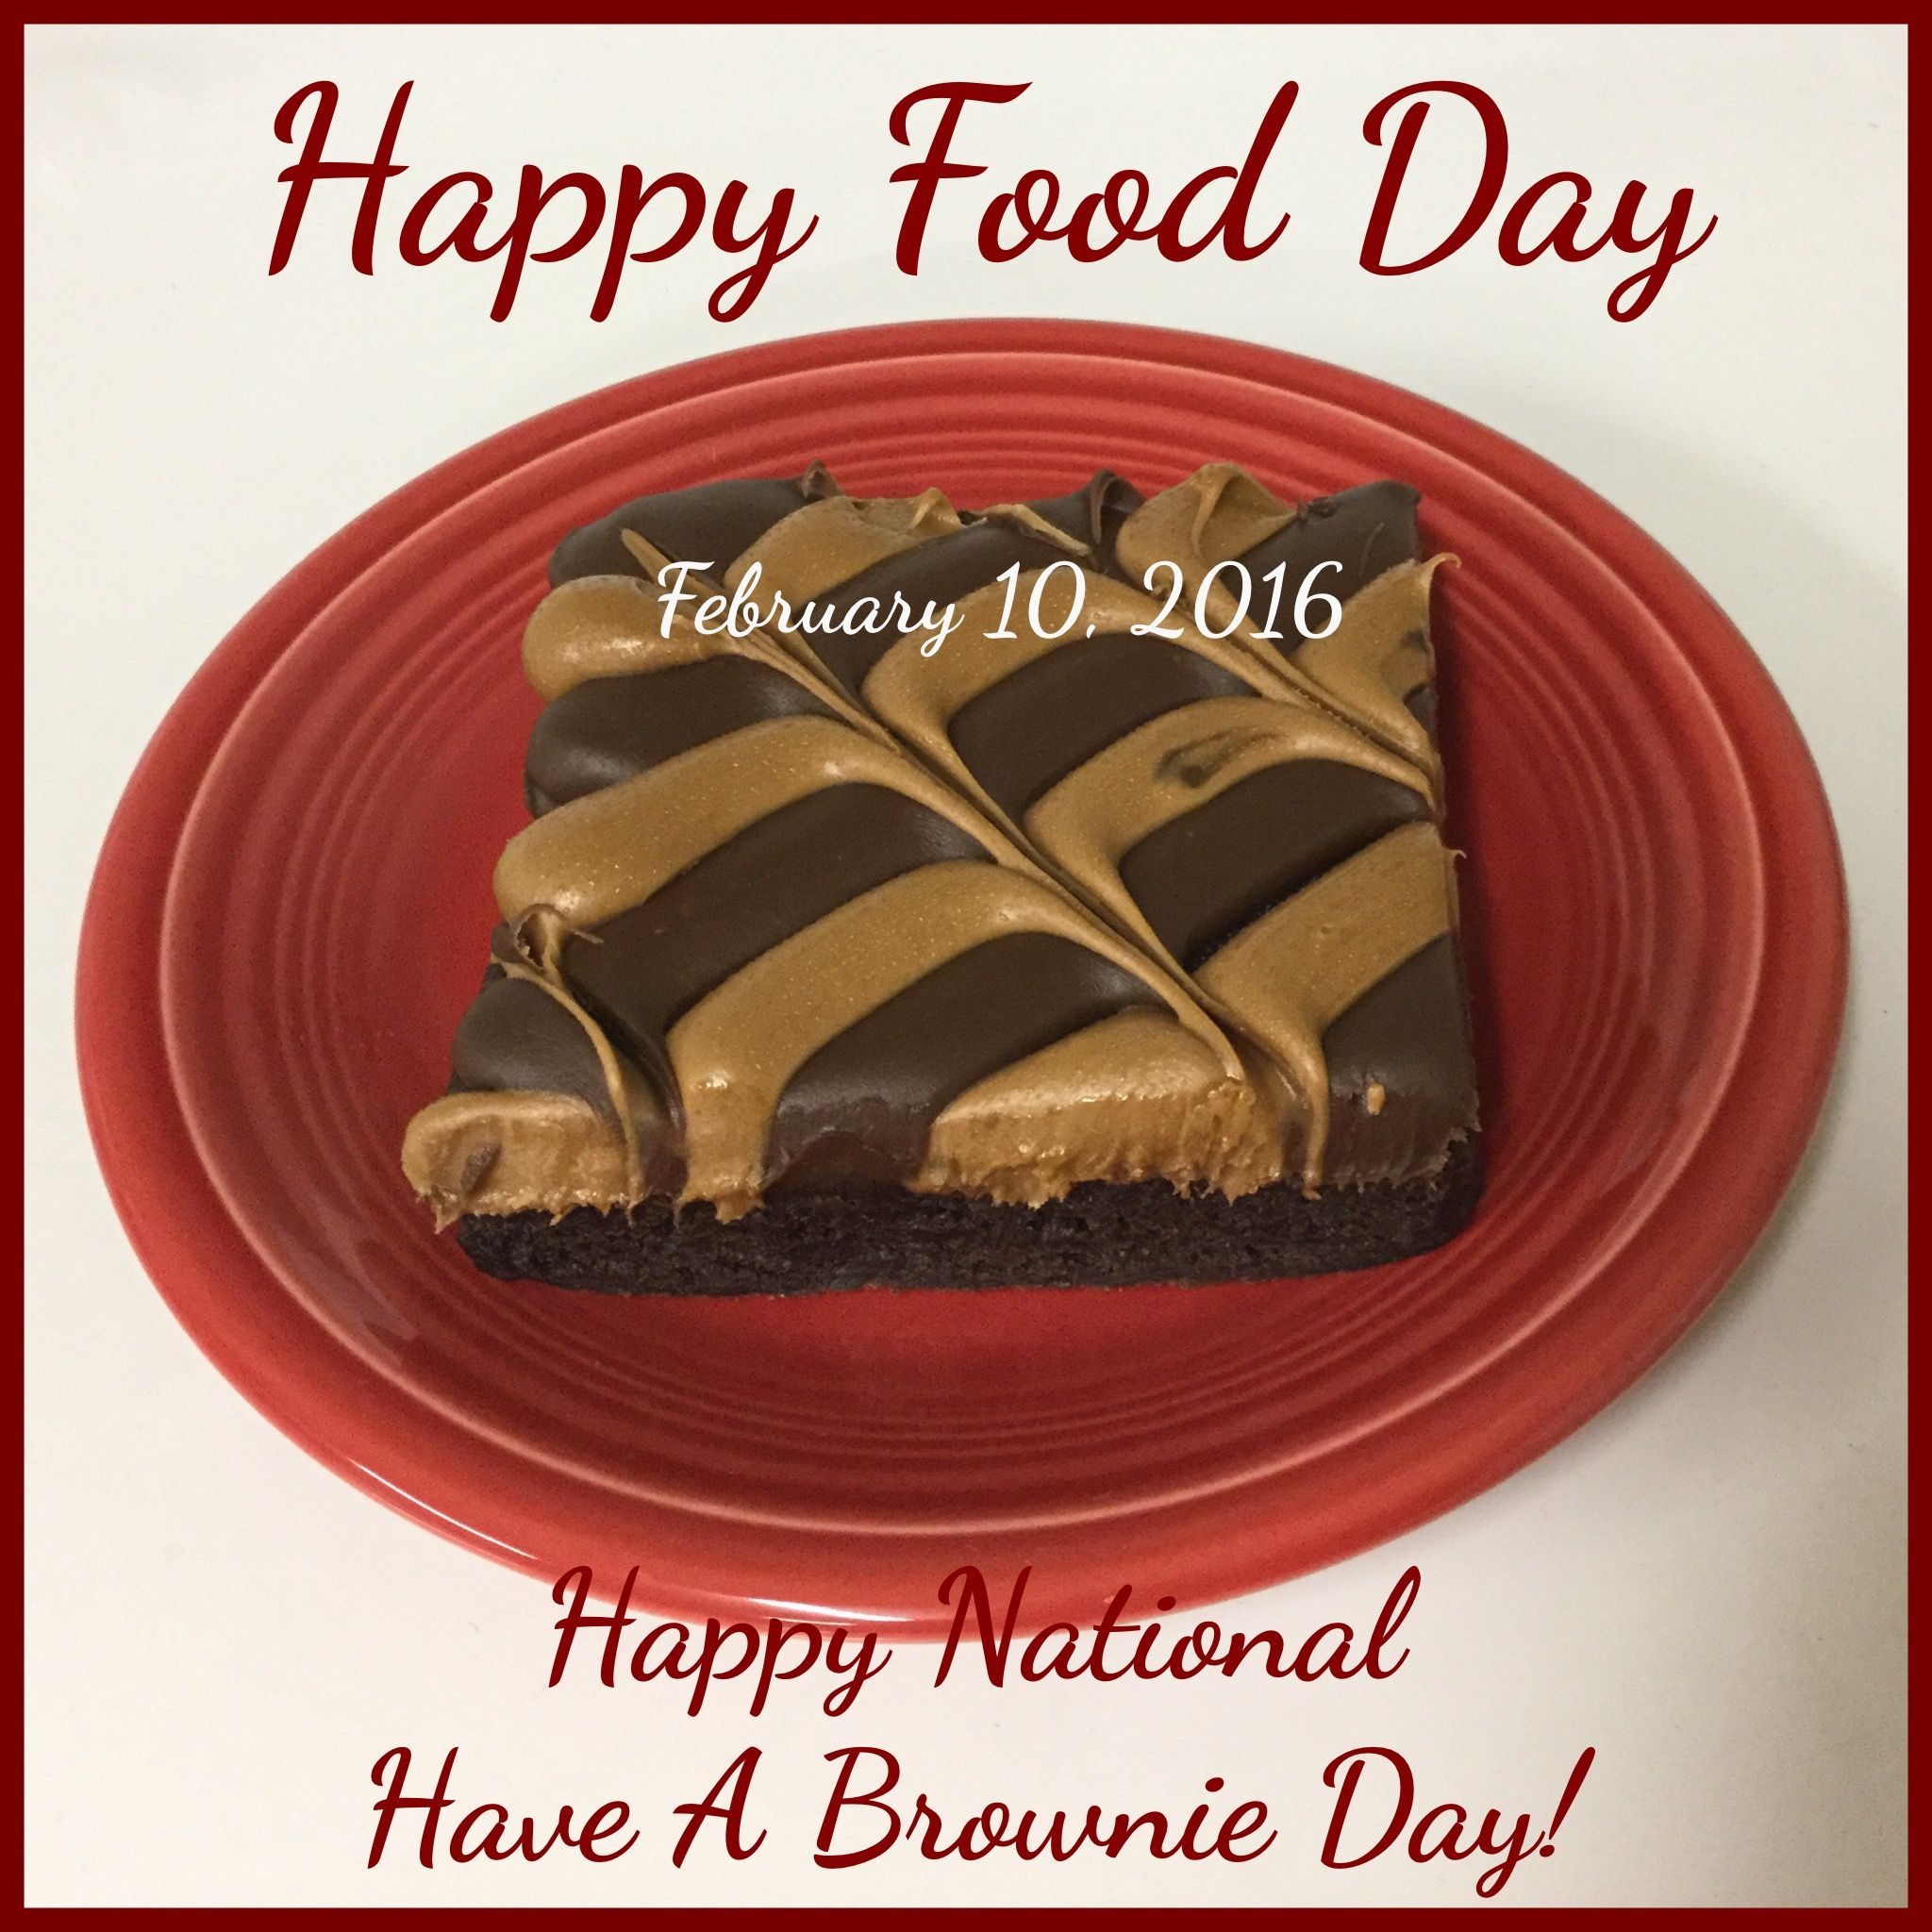 Ruth Mott Victorian Kitchen Happy National Cream Filled Chocolate Day February 14 2016